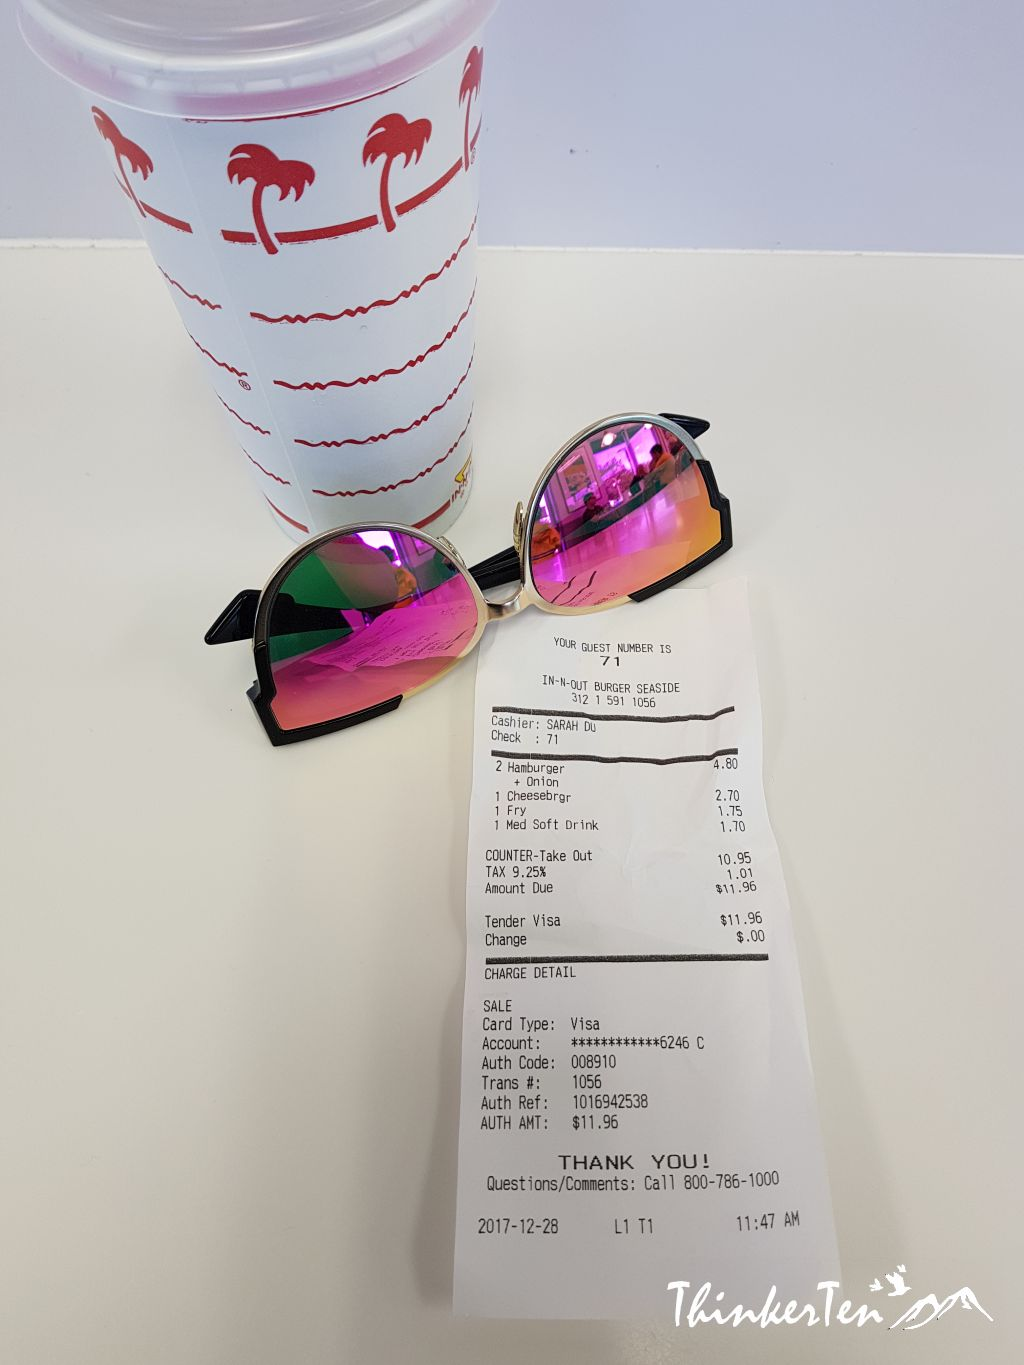 My IN-N-Out Burger Experience in California - Chic . Explore ...